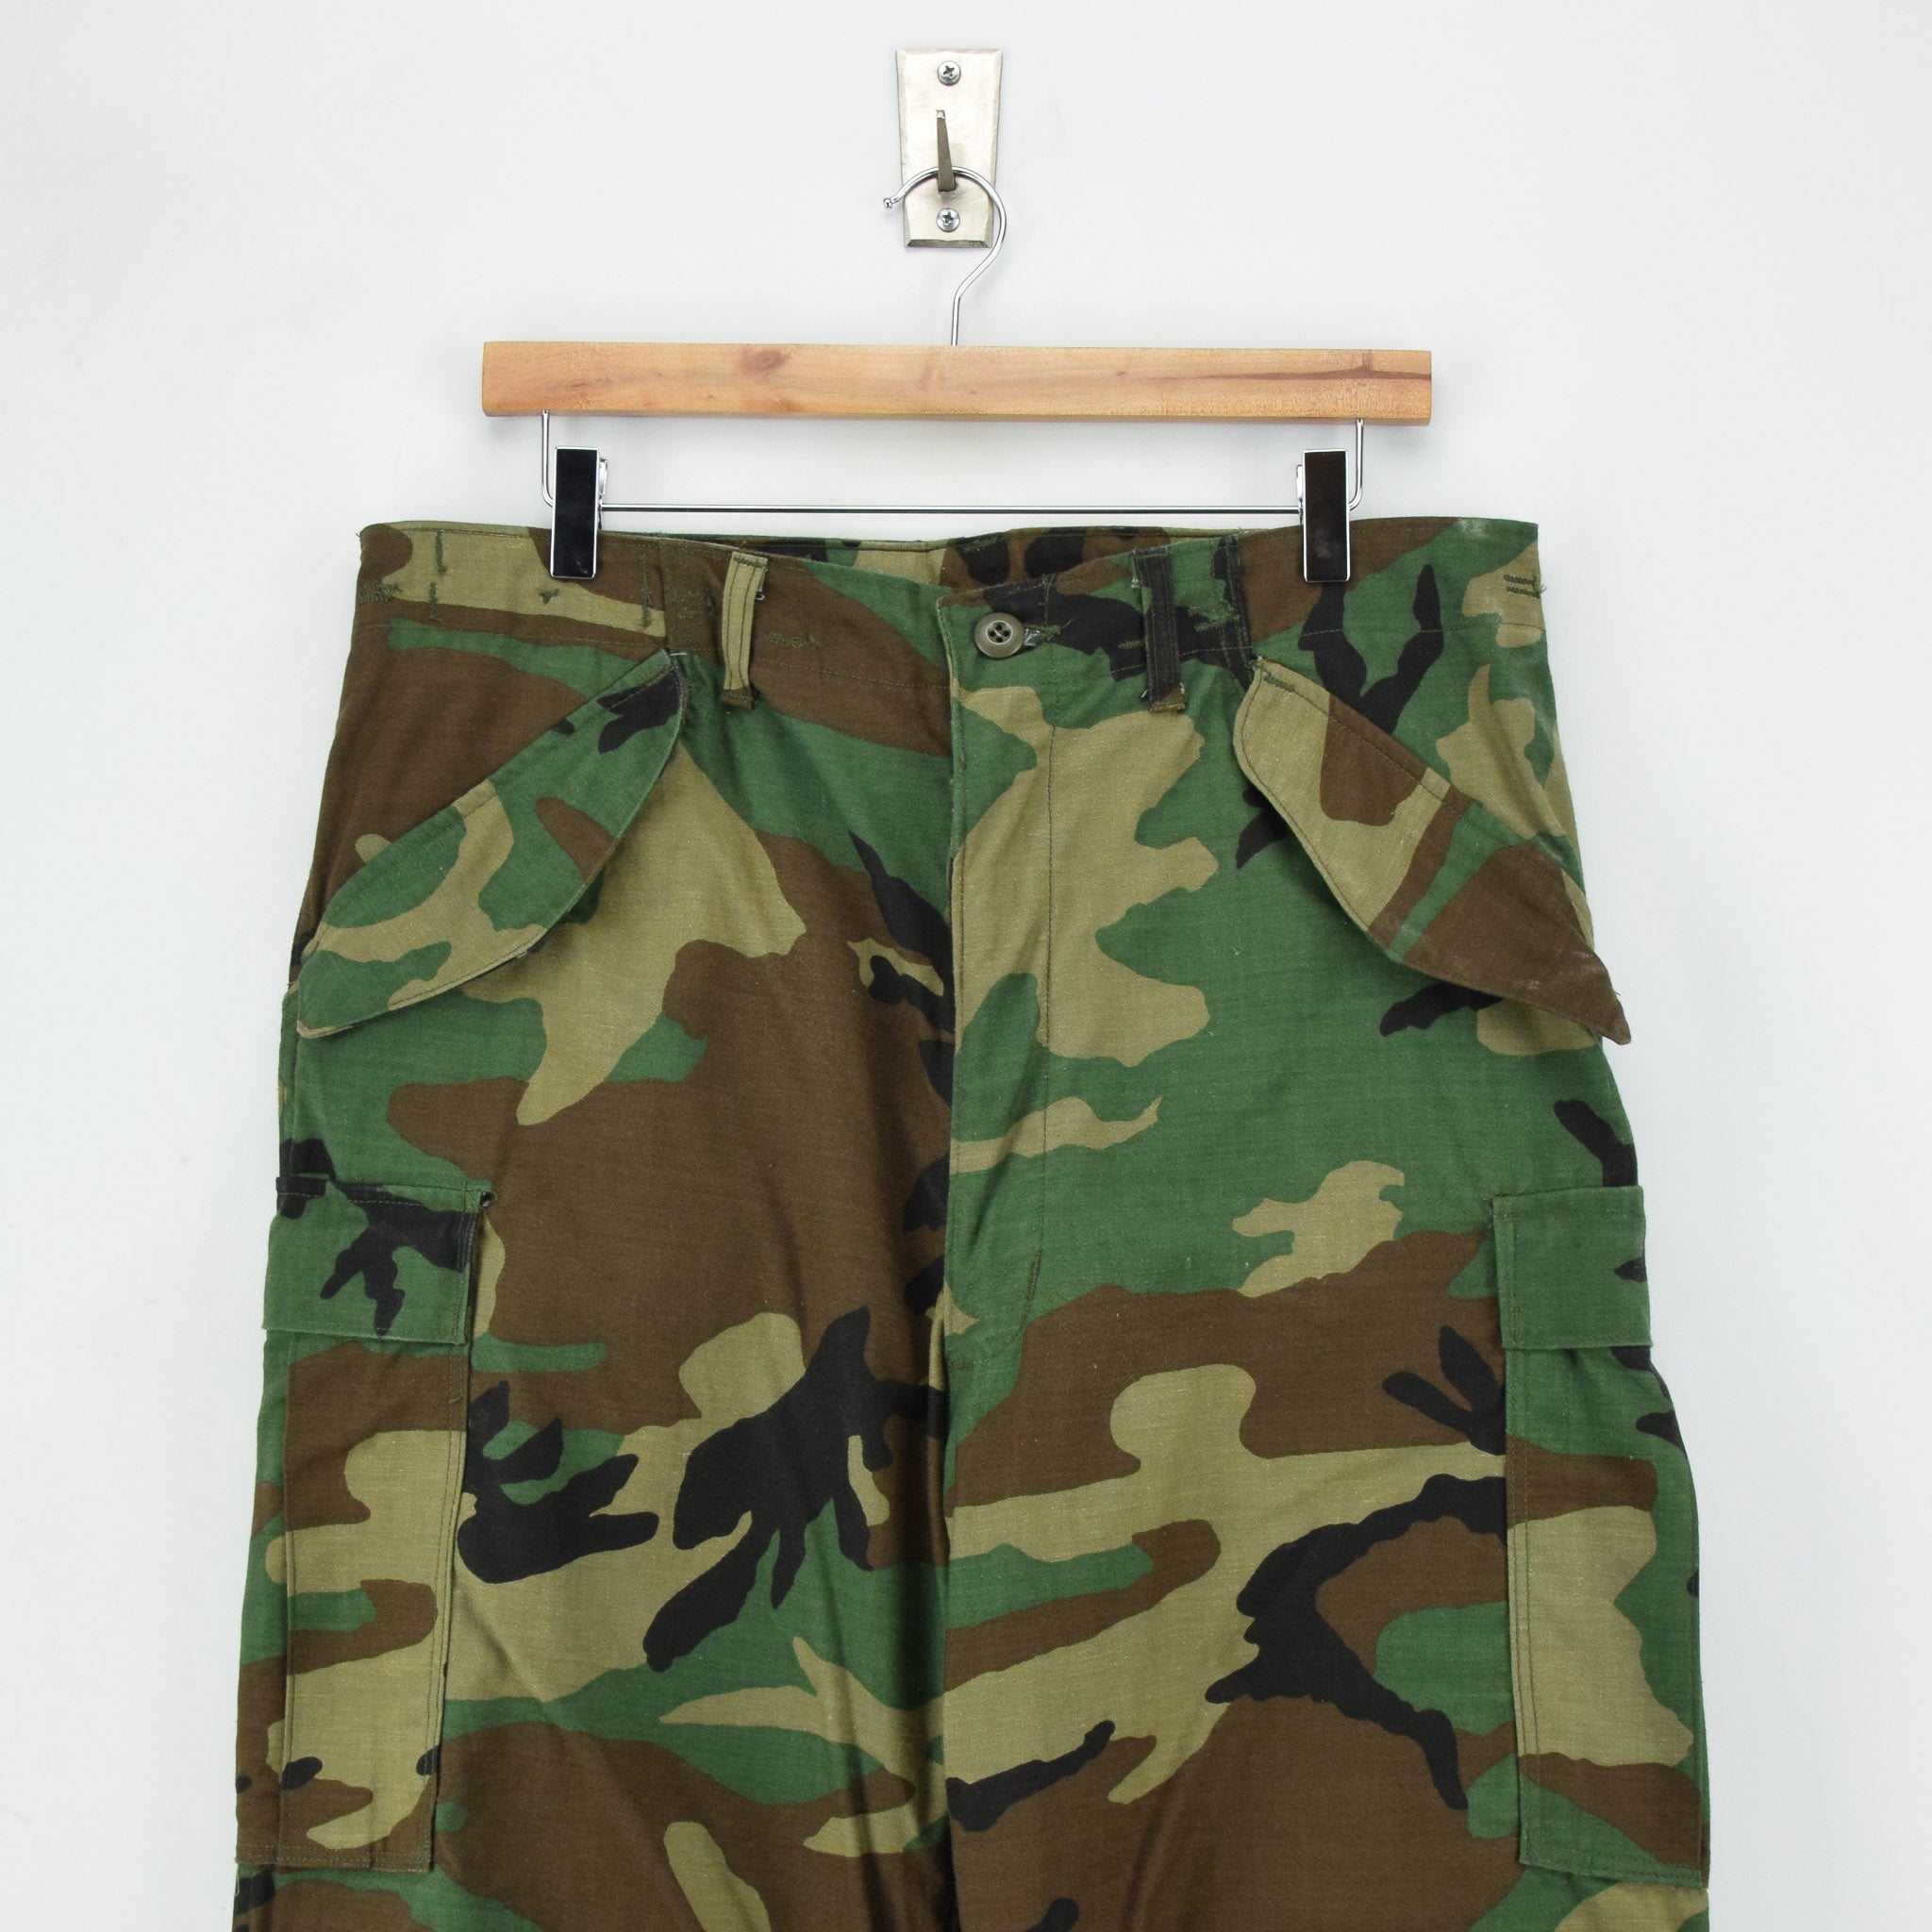 Vintage 80s US Army Camo Cold Weather Military Combat Field Trousers M Long front waist